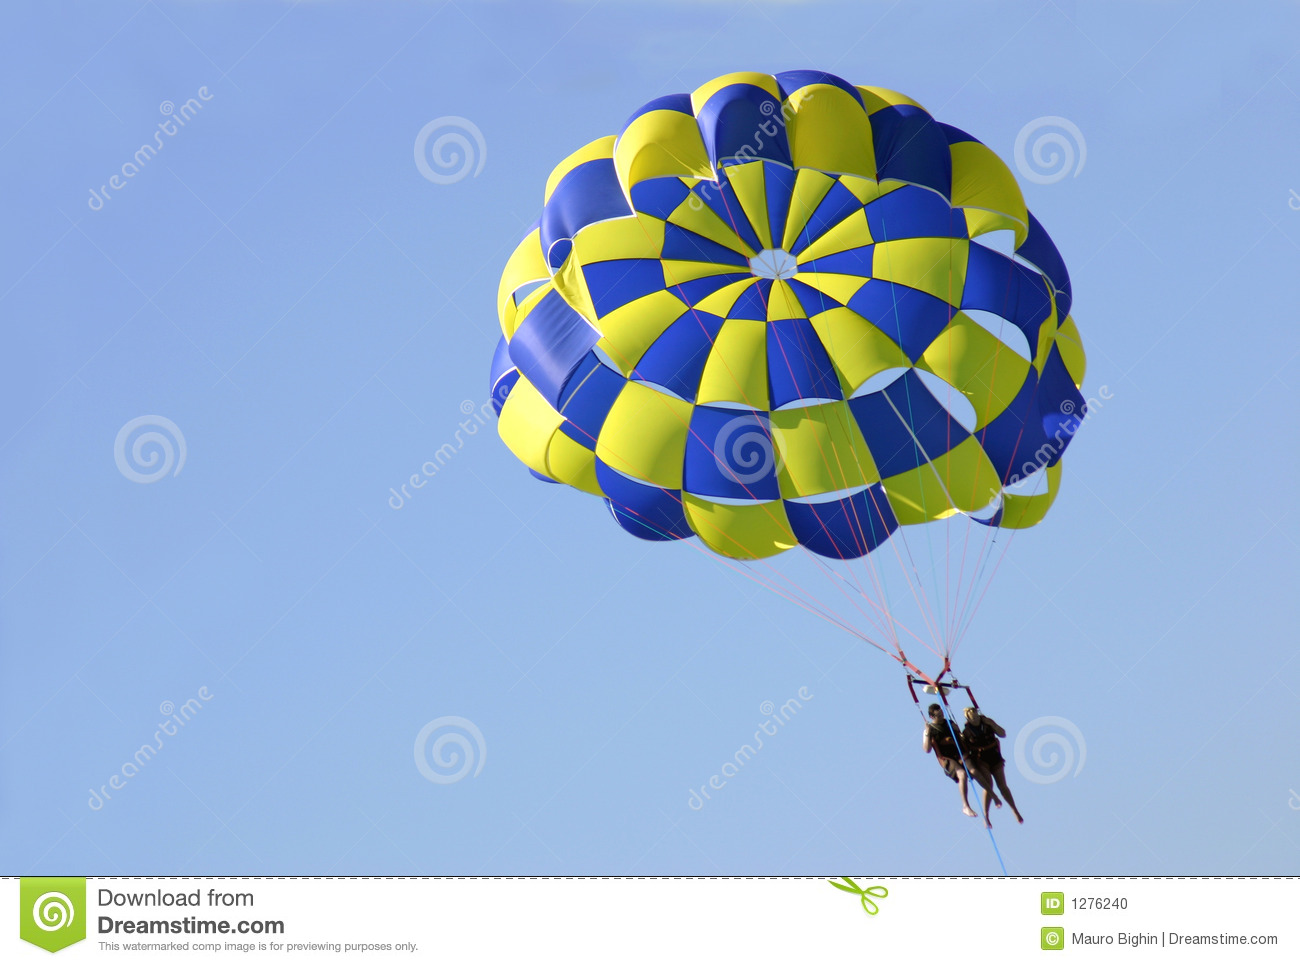 Water parachuting on the Blue Coast in France.